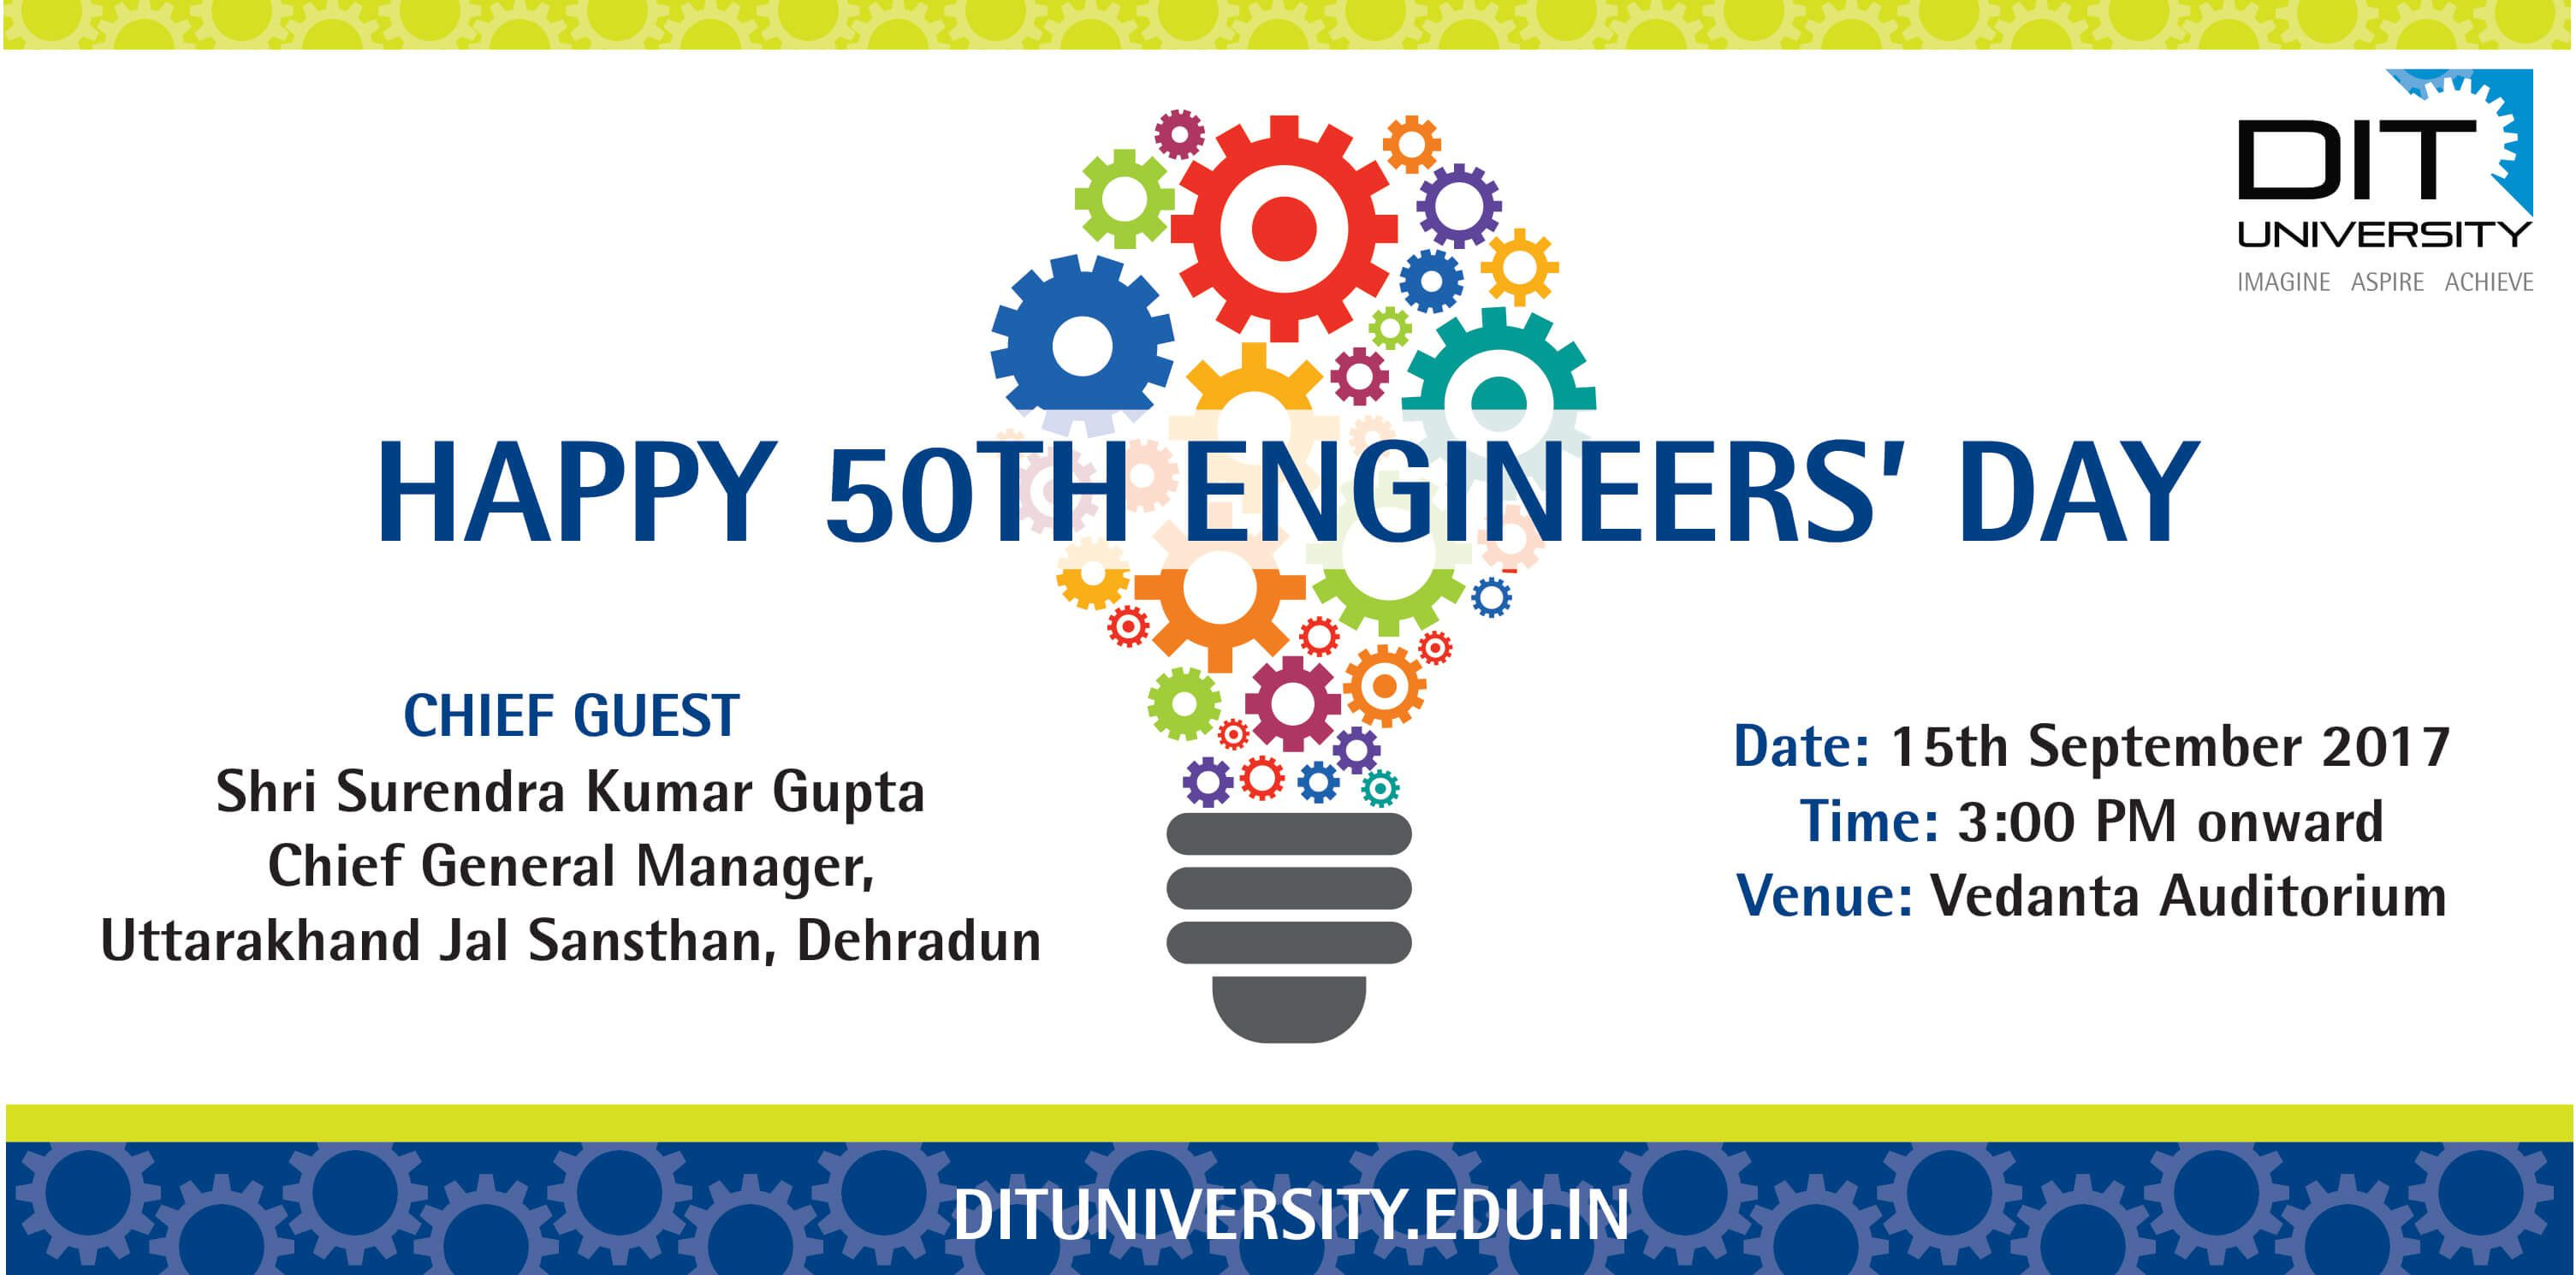 Engineers' Day Celebration